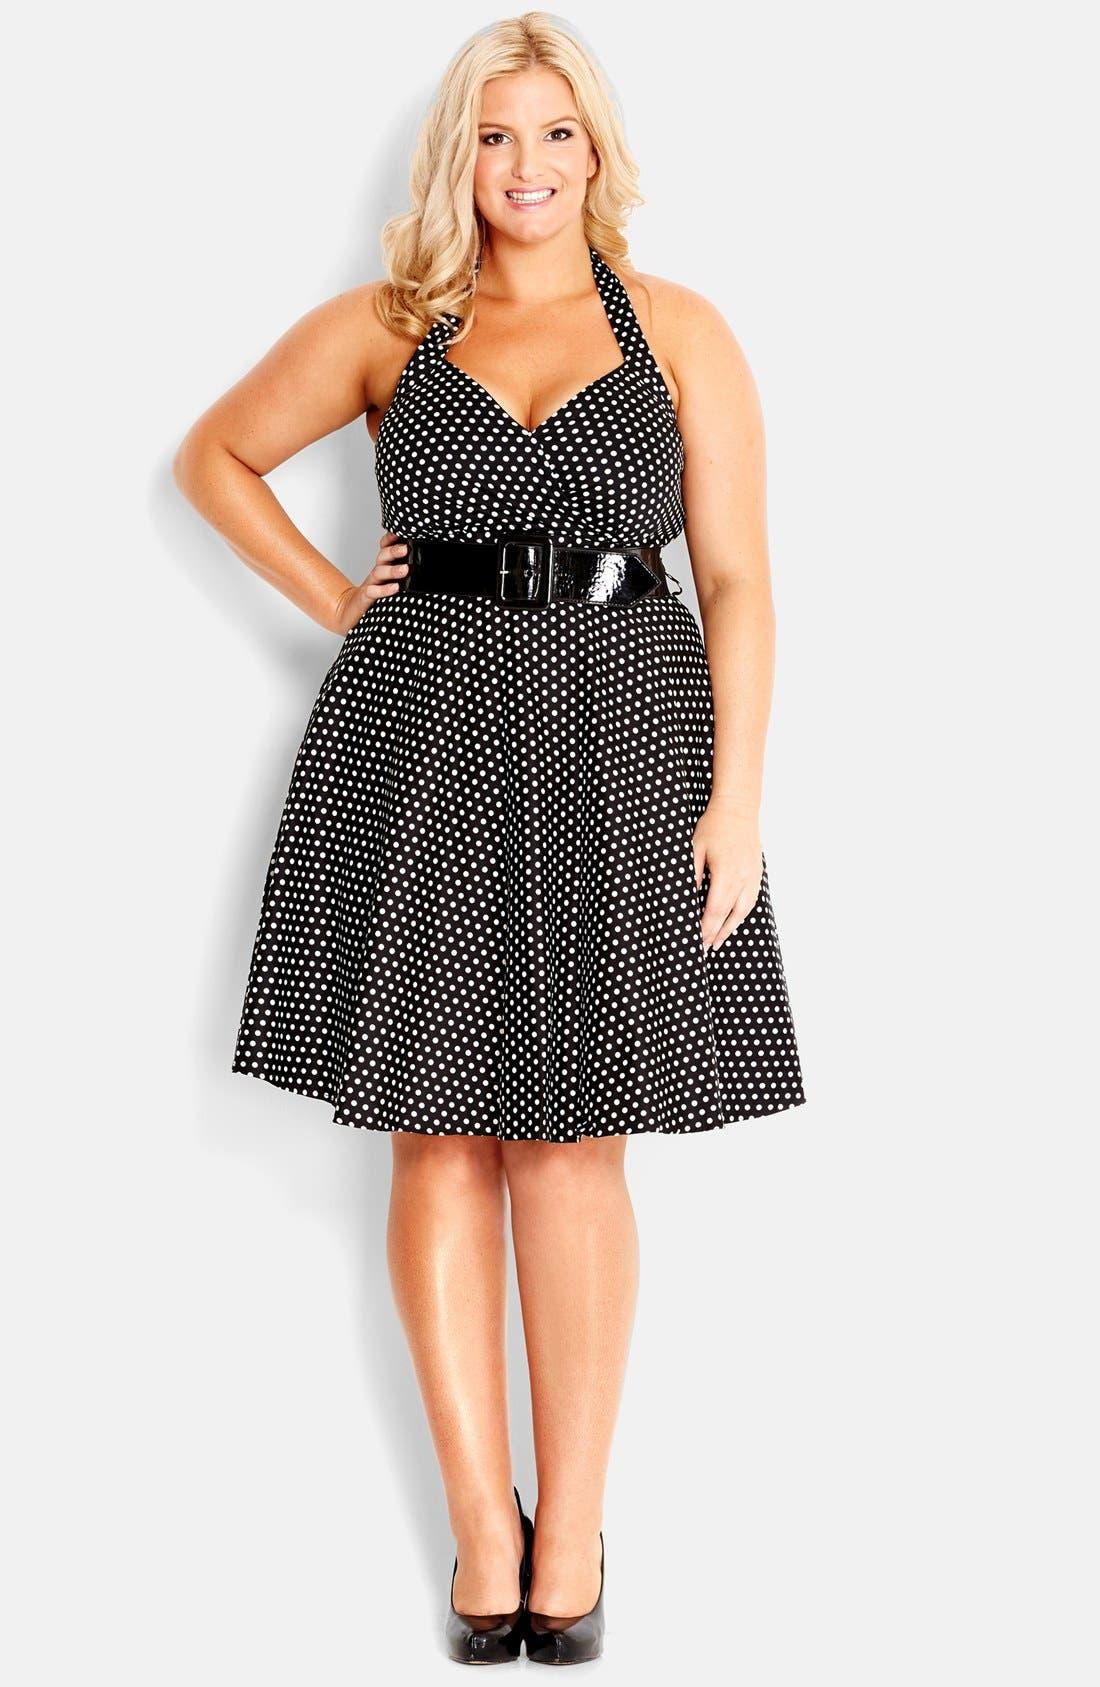 Main Image - City Chic 'Spot Siren' Belted Fit & Flare Halter Dress (Plus Size)